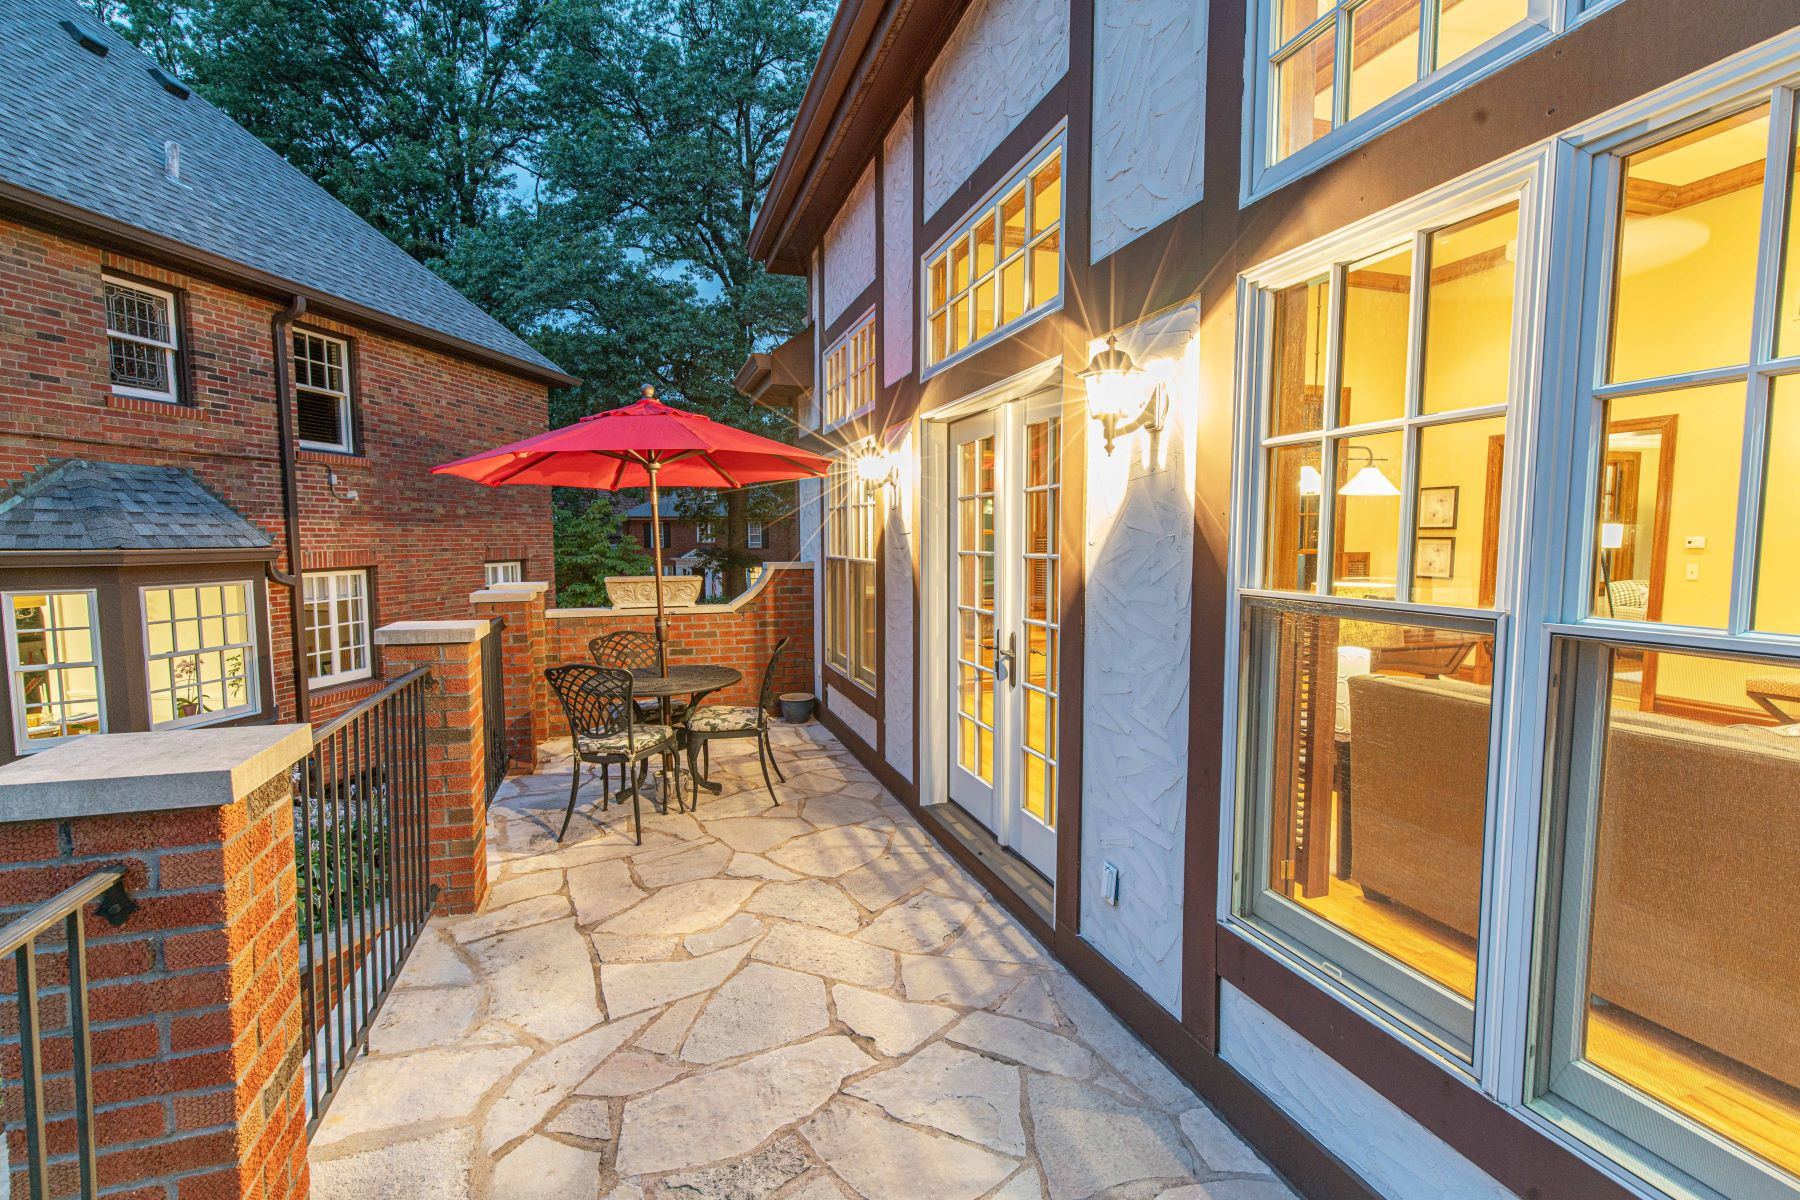 Additional photo for property listing at Immaculate Tudor in prestigious University Hills! 7298 Greenway Avenue University City, Missouri 63130 United States